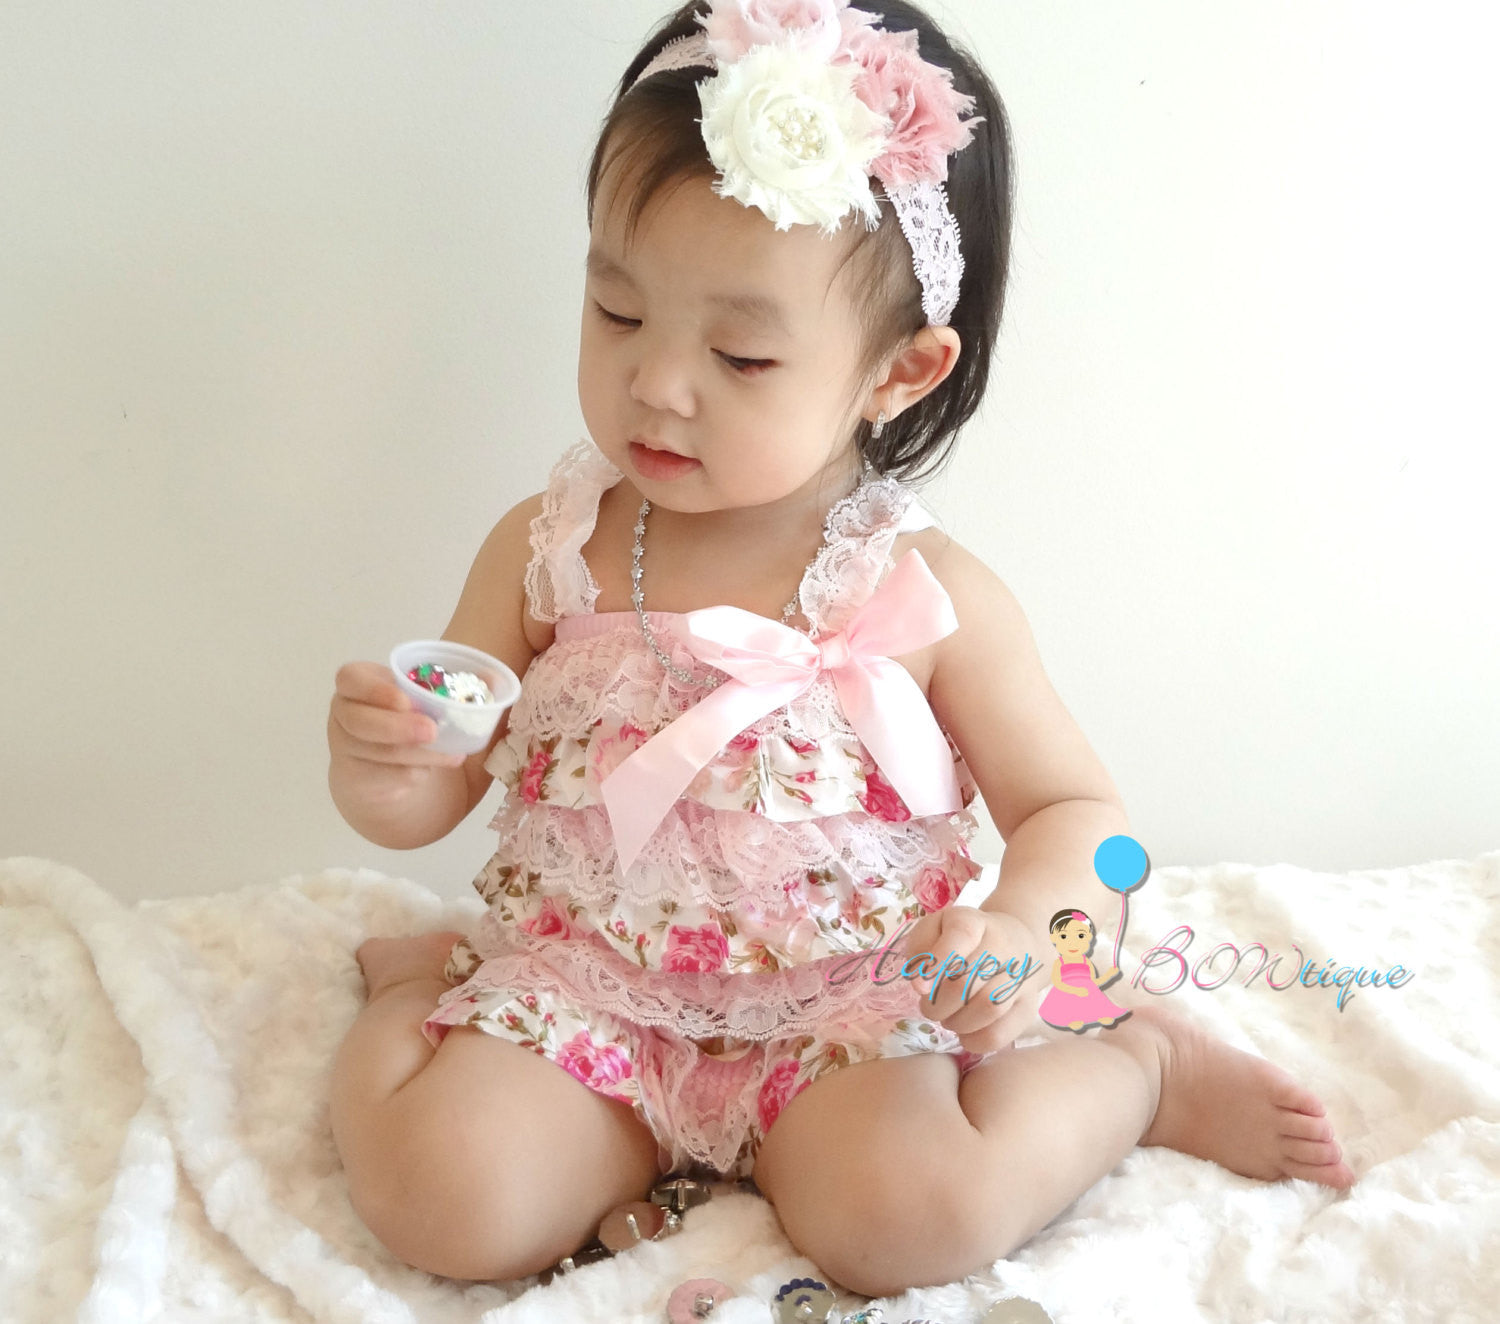 Vintage Roses Lace Romper - Happy BOWtique - children's clothing, Baby Girl clothing